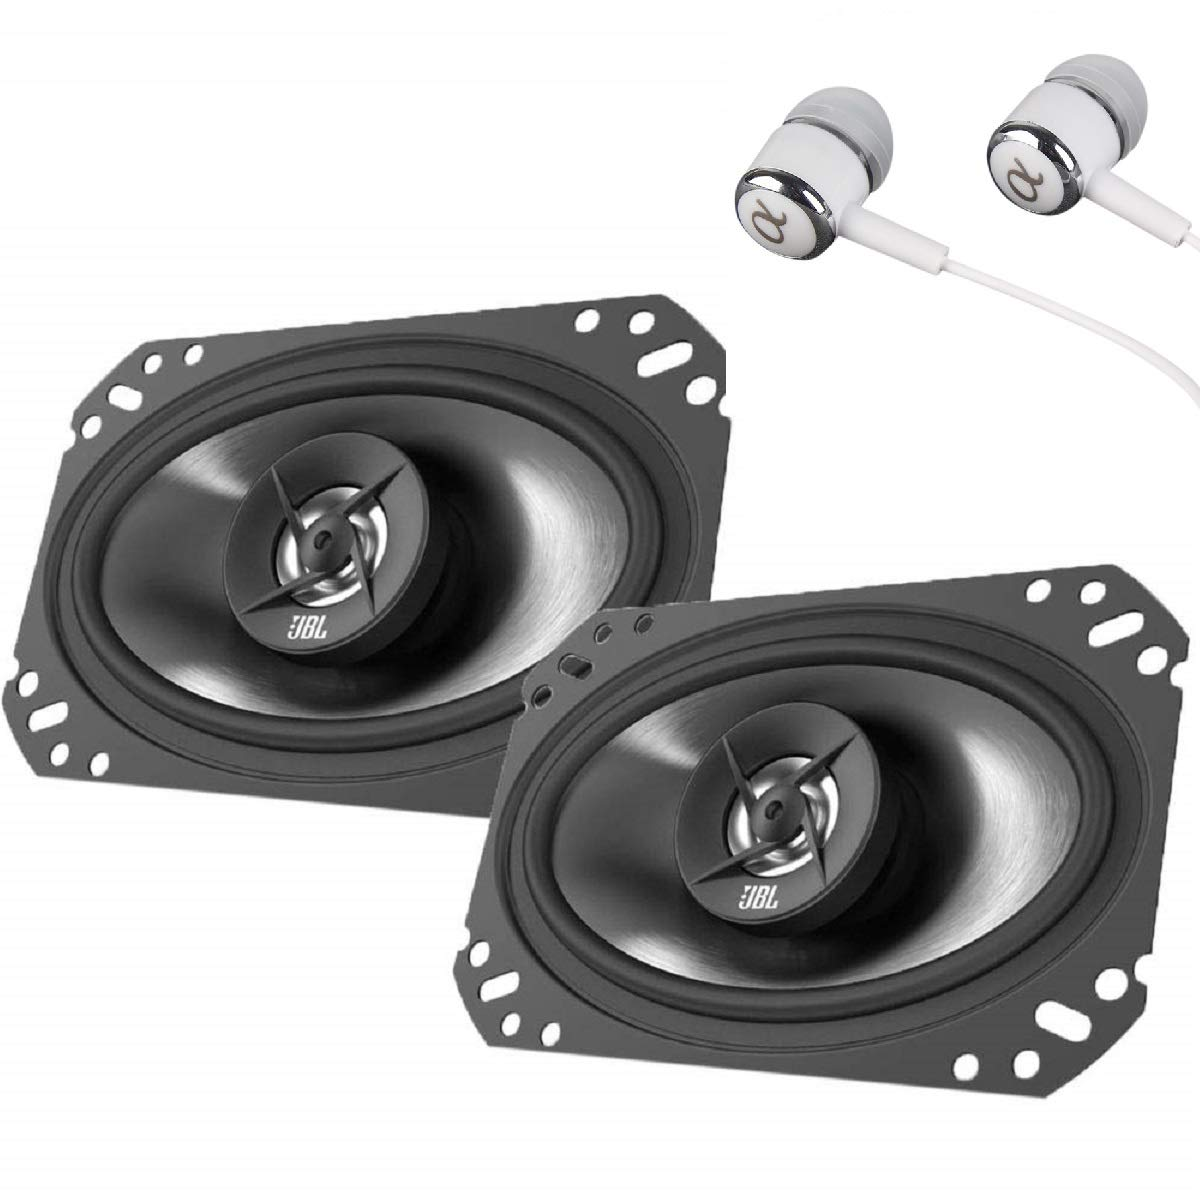 """JBL Stage 6402 210W Max (70W RMS) 4"""" x 6"""" 4 ohms Stage Series 2-Way Coaxial Car Audio Speakers"""